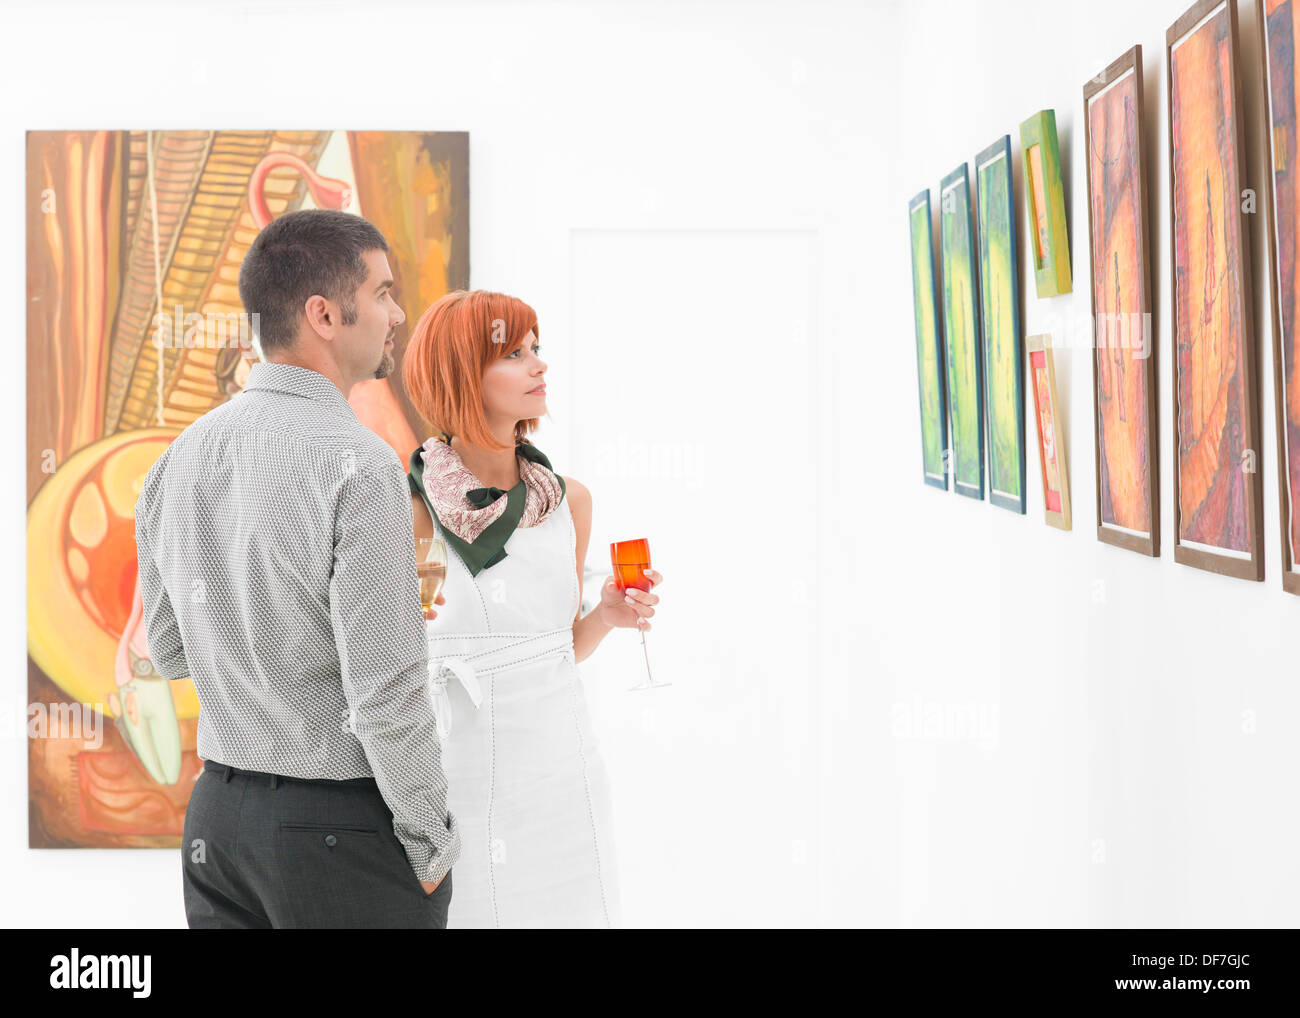 young caucasian couple standing in a gallery and holding colorful glasses of wine in their hands, contemplating artwork displayed on walls - Stock Image